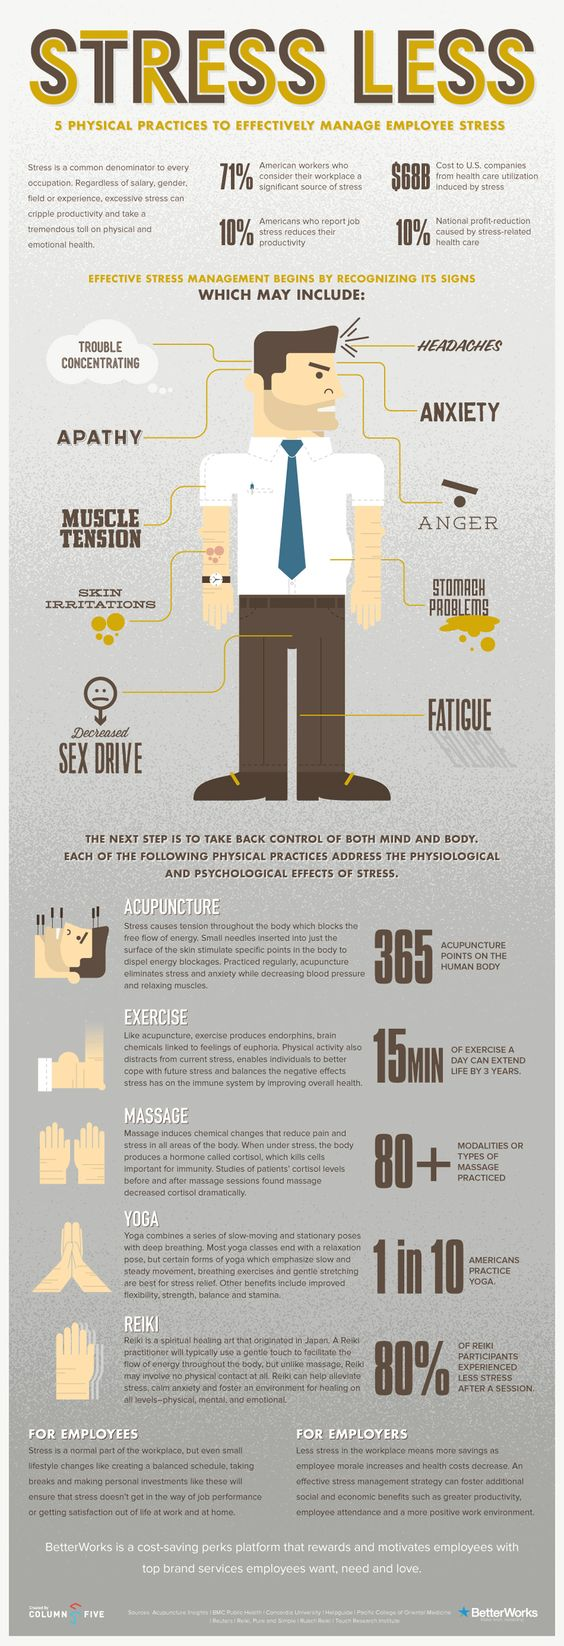 Stress less:  Five physical practices to effectively manage employee stress.  #infographic